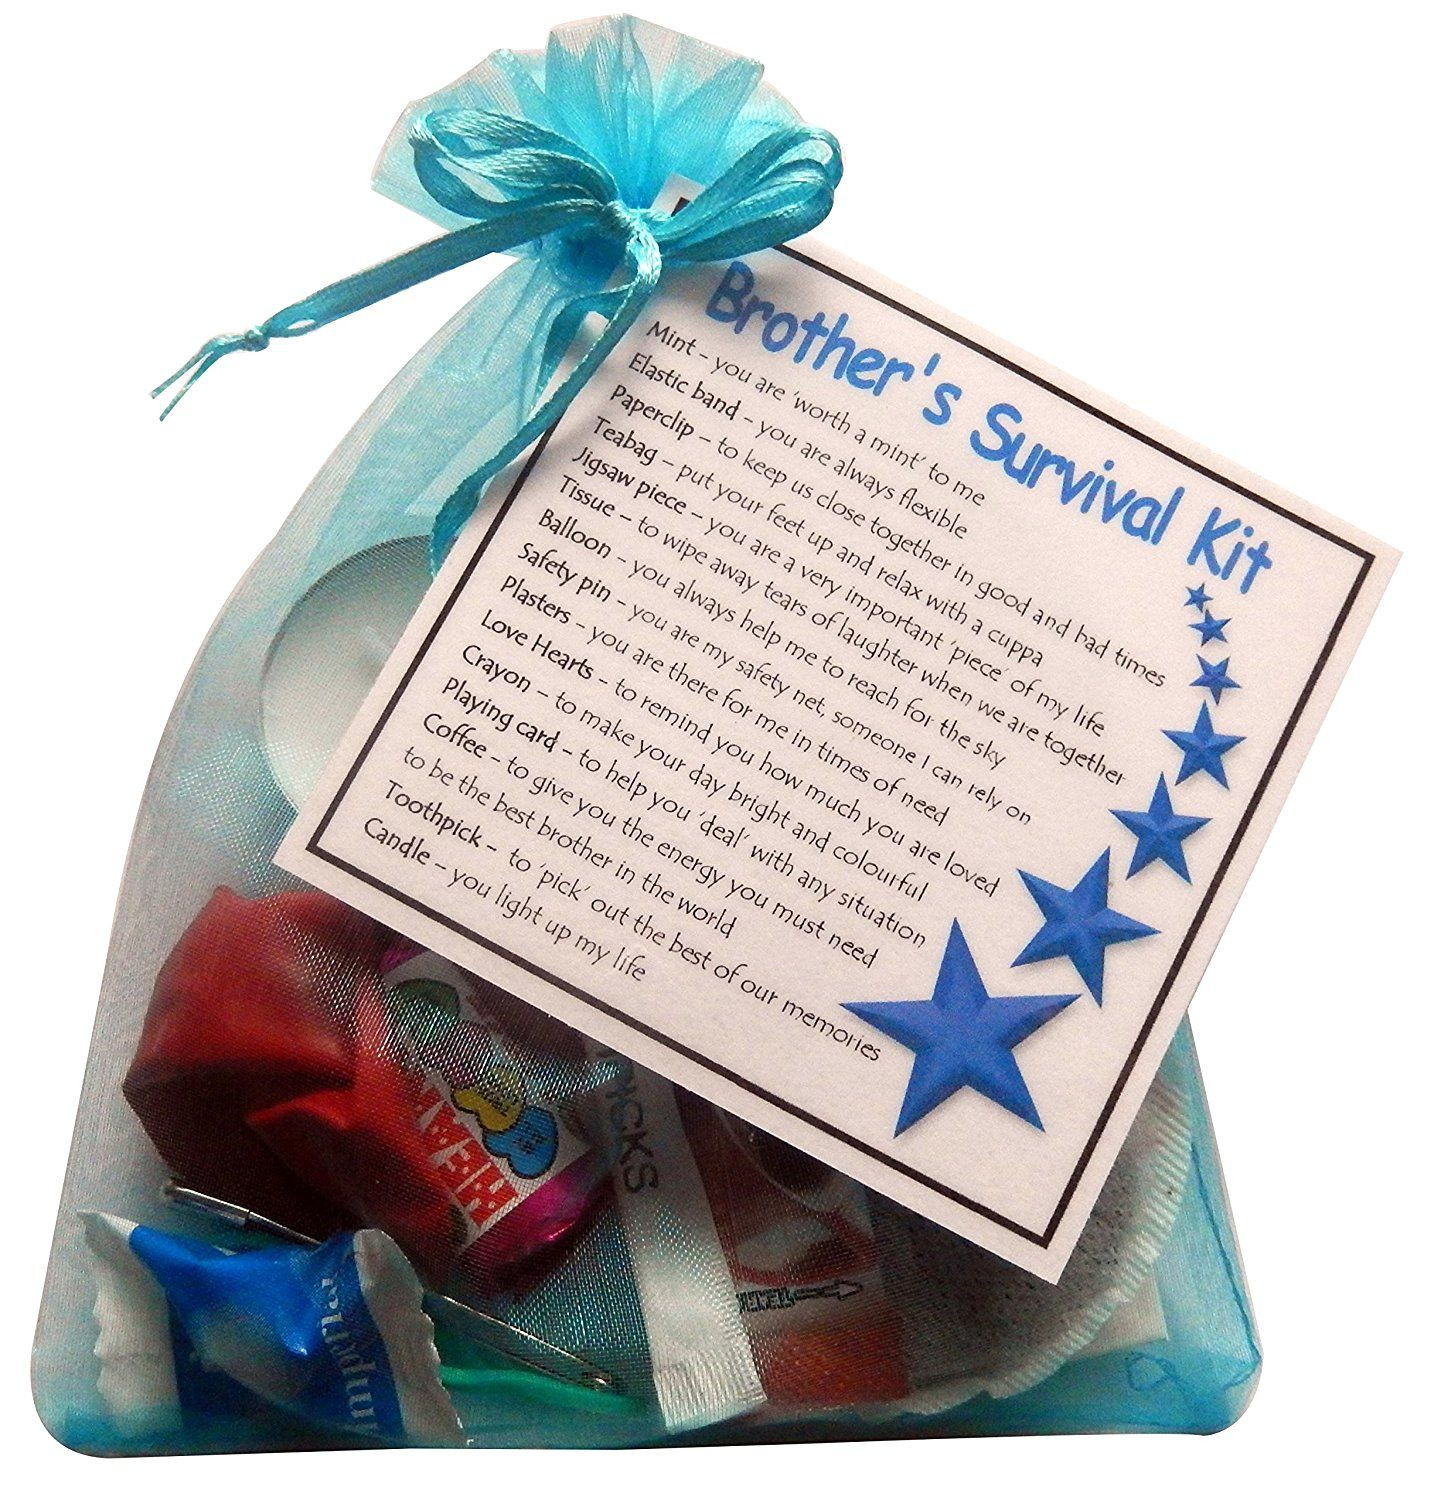 DIY Christmas Gifts For Brothers  Brother s Survival Kit Gift Great novelty t for